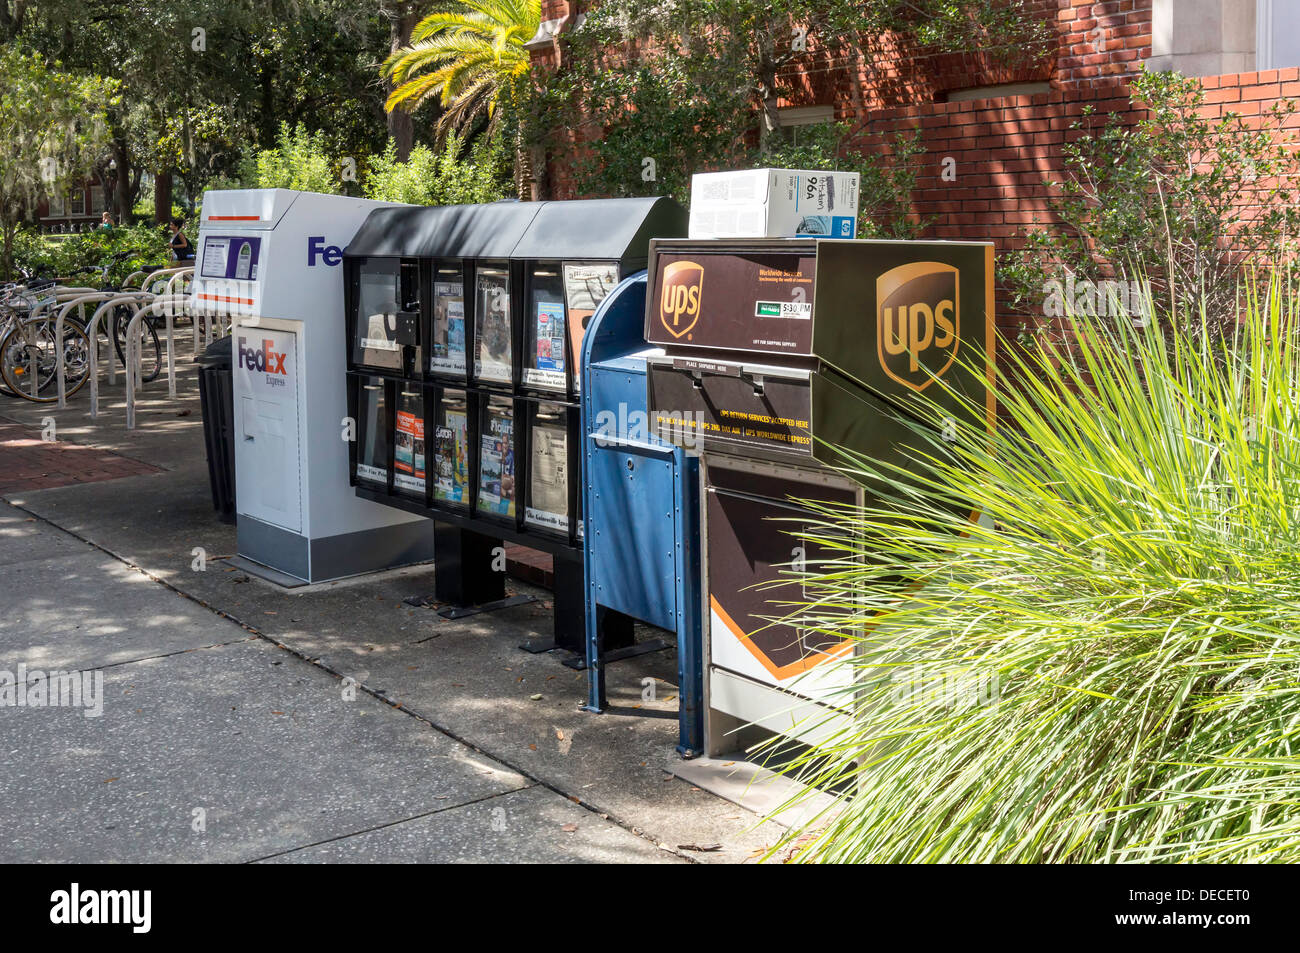 Cost of color printing at fedex - Color Printing Cost Fe Fedex Color Printing Cost Per Page Row Of Usps Mailbox Fedex